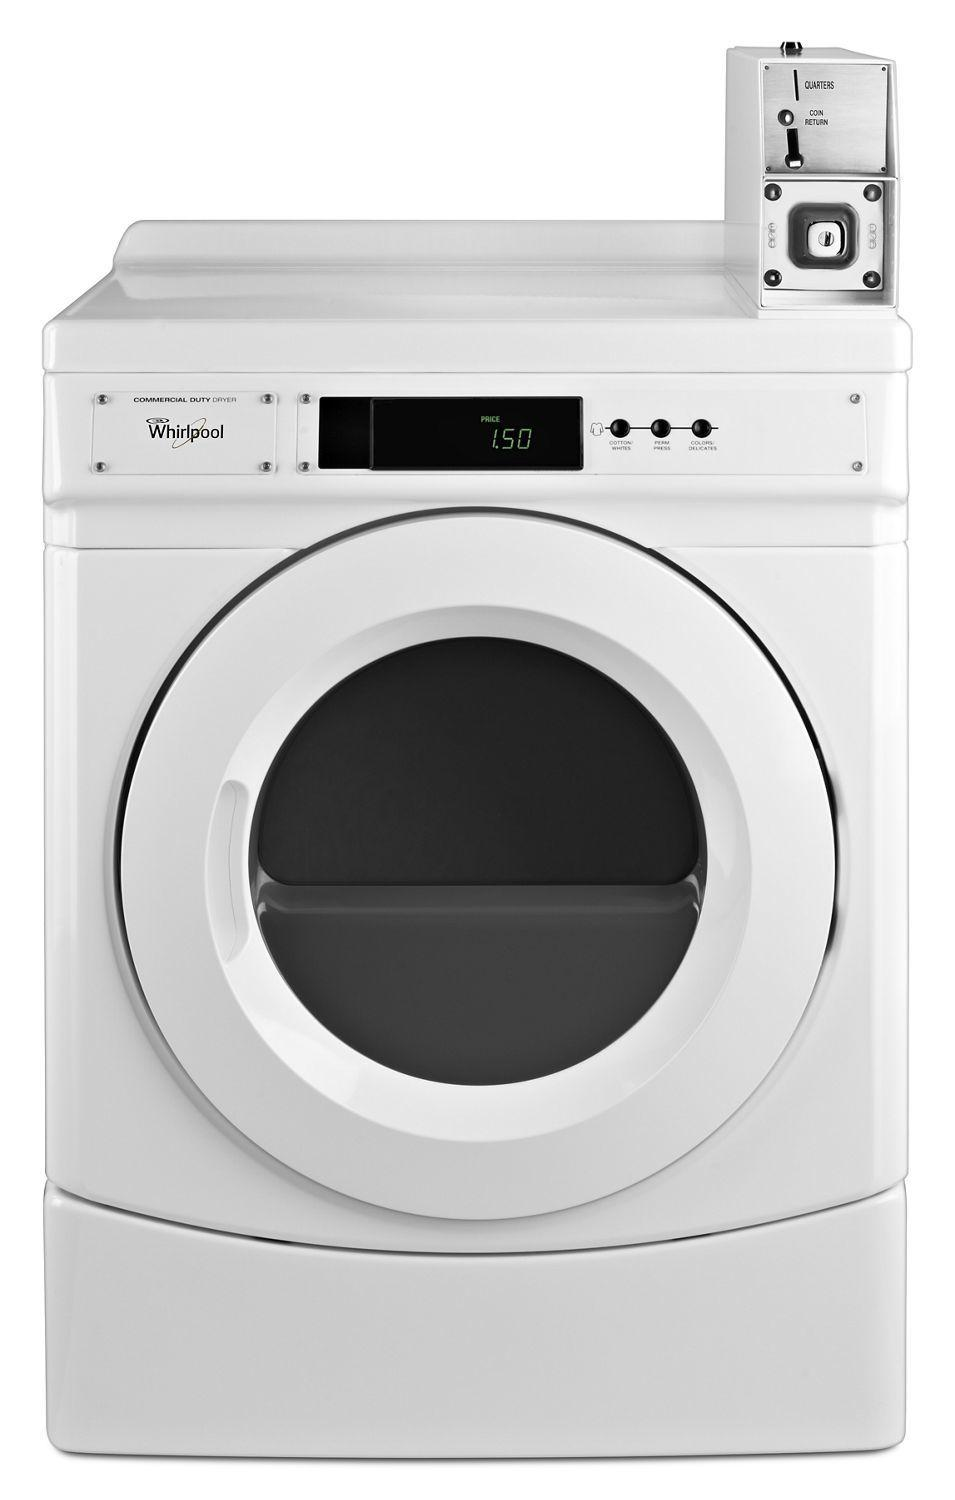 "Whirlpool27"" Commercial Electric Front-Load Dryer Featuring Factory-Installed Coin Drop With Coin Box White"